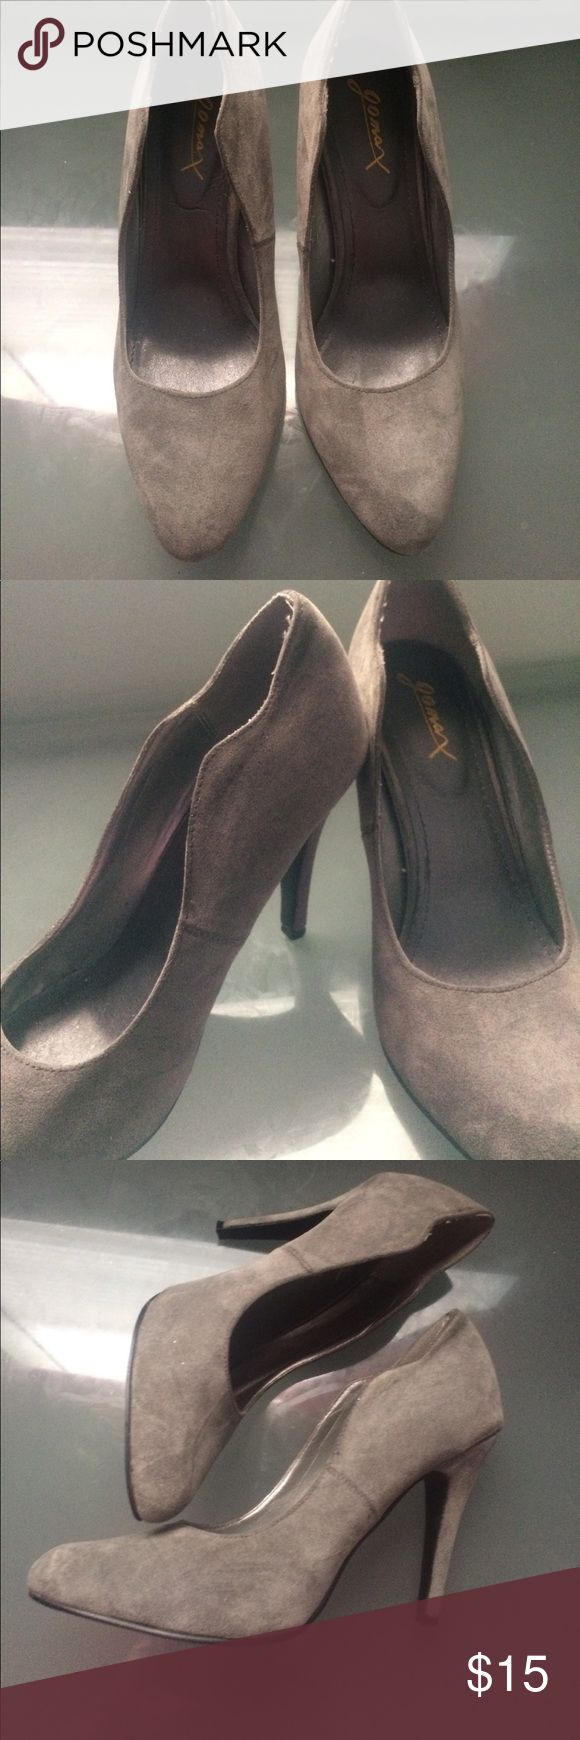 Grey High Heels Great for Work, Date, Going out etc.. USED Shoes Heels